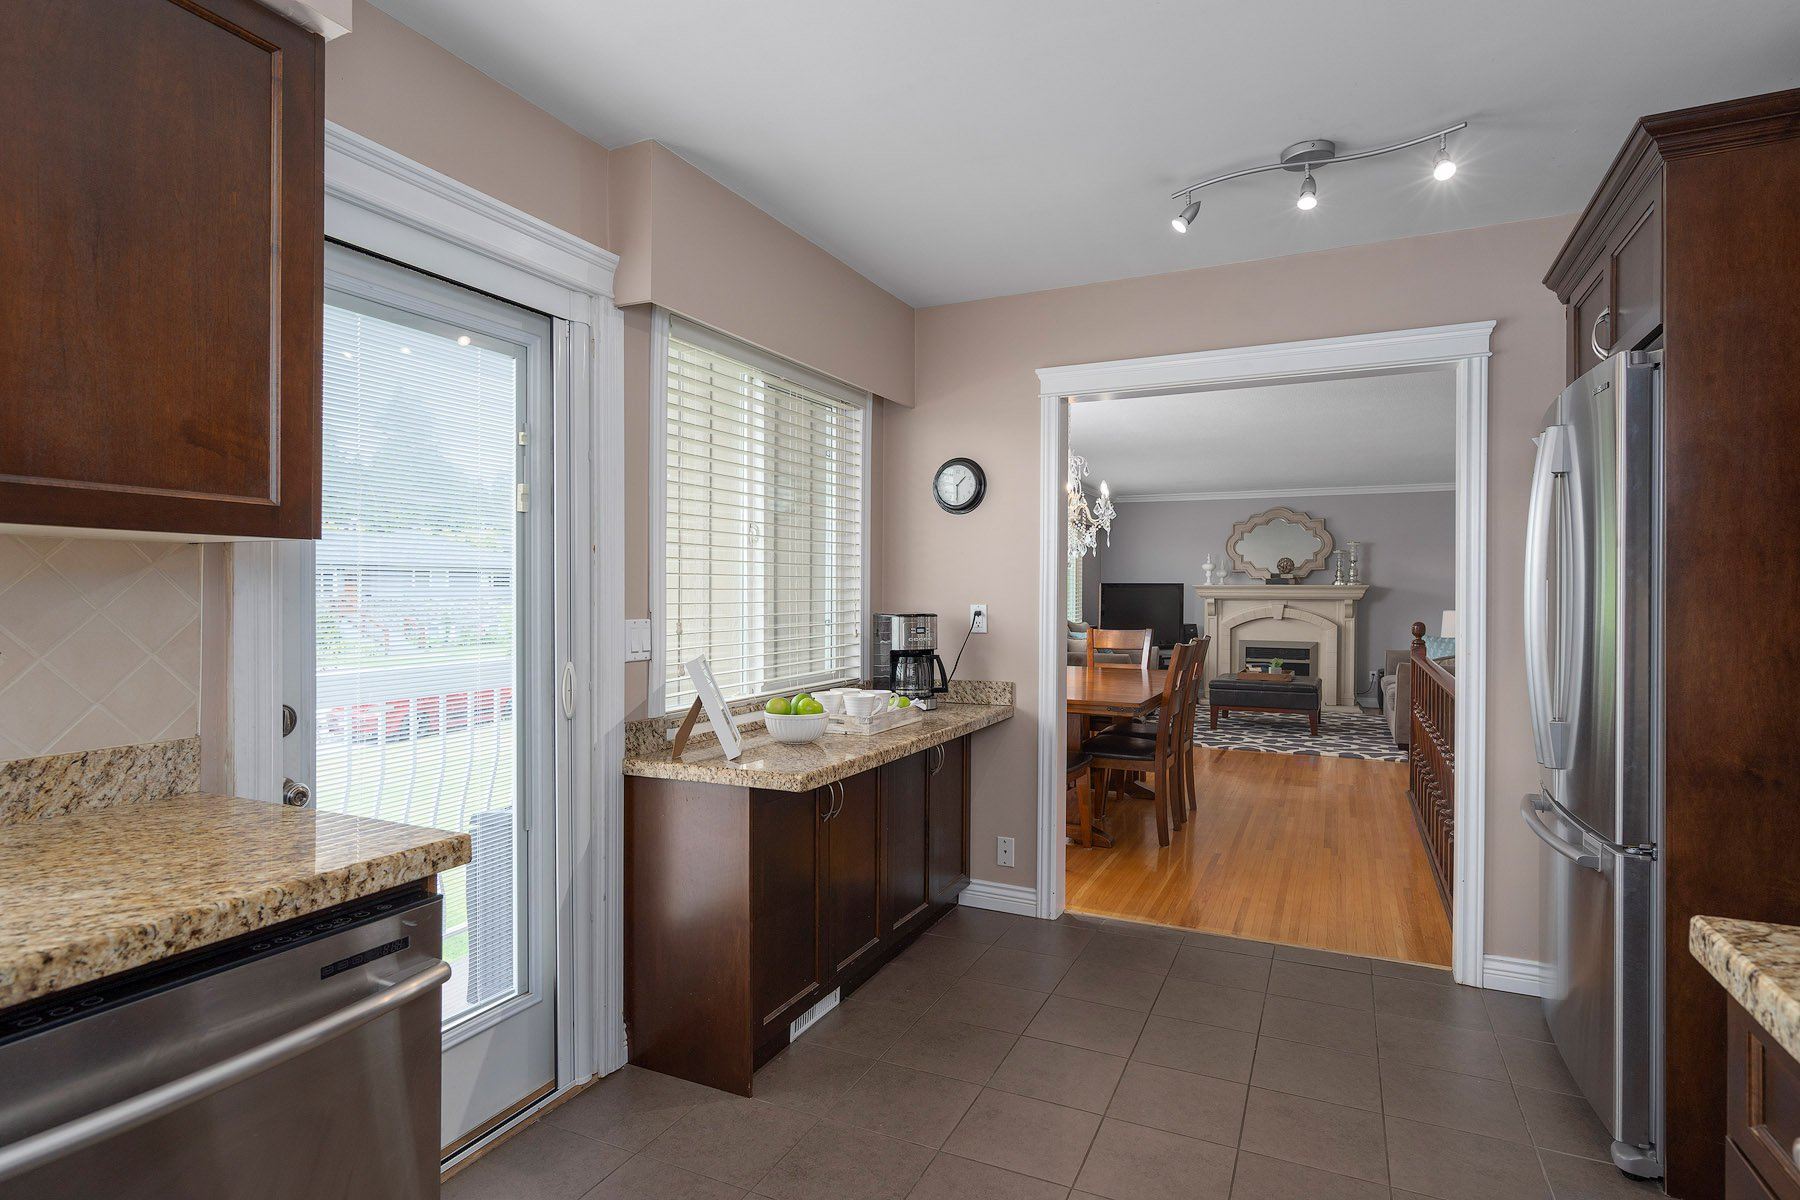 Photo 9: Photos: 423 MONTGOMERY Street in Coquitlam: Central Coquitlam House for sale : MLS®# R2380693